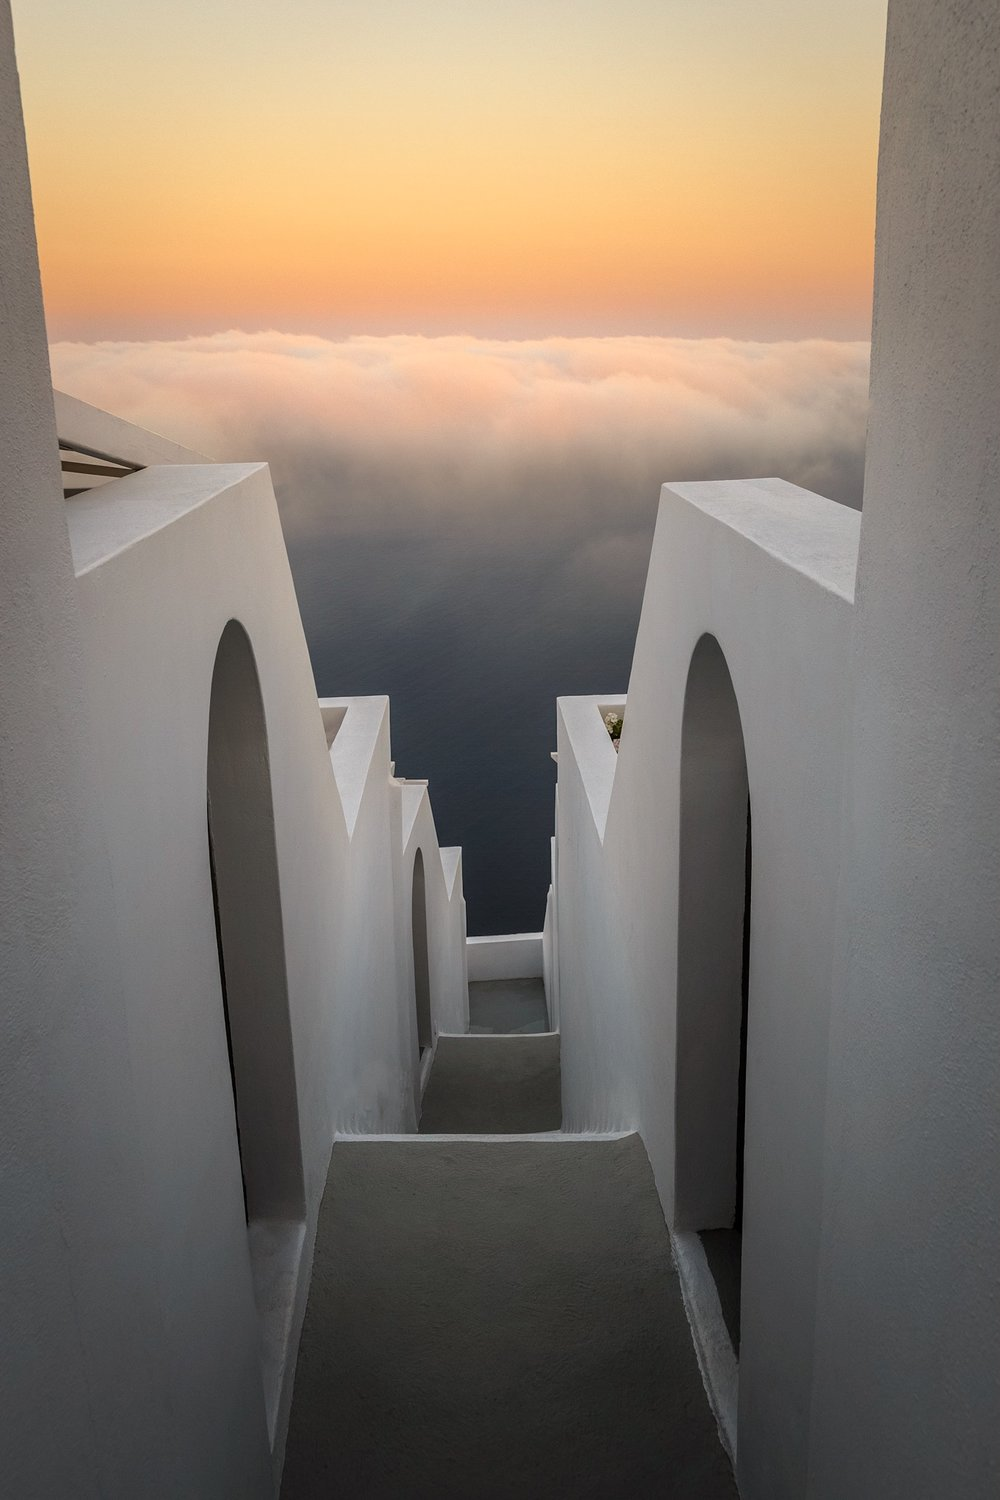 Sunrise over the morning clouds in Santorini